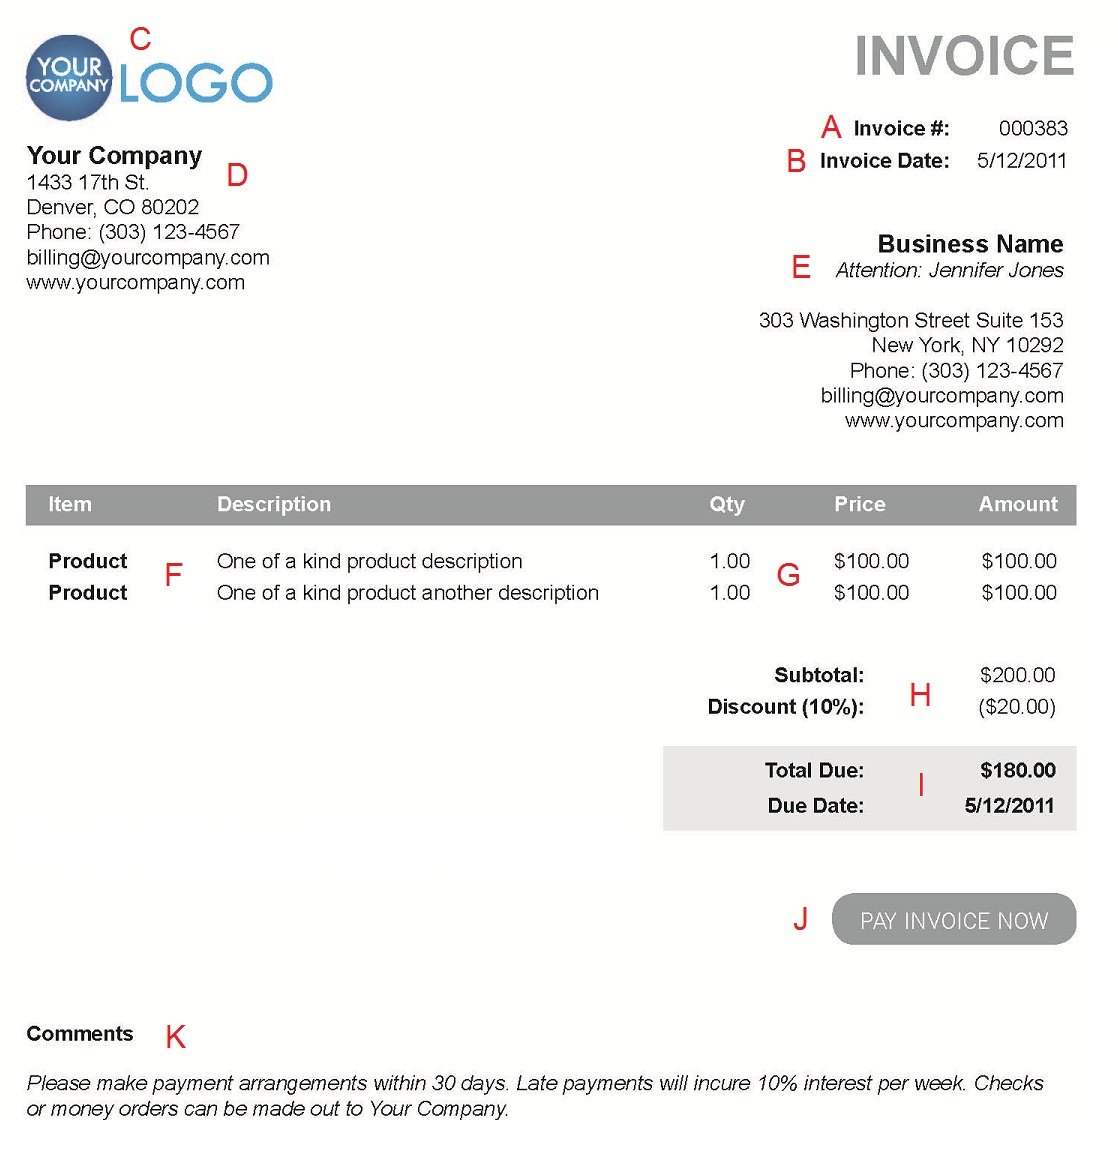 Aaaaeroincus  Mesmerizing The  Different Sections Of An Electronic Payment Invoice With Foxy A  With Astonishing Free Invoice Form Template Also Australian Tax Invoice Template Excel In Addition Car Invoice Cost And Due Invoices As Well As Pi Purchase Invoice Additionally Download Free Invoice Software From Paysimplecom With Aaaaeroincus  Foxy The  Different Sections Of An Electronic Payment Invoice With Astonishing A  And Mesmerizing Free Invoice Form Template Also Australian Tax Invoice Template Excel In Addition Car Invoice Cost From Paysimplecom